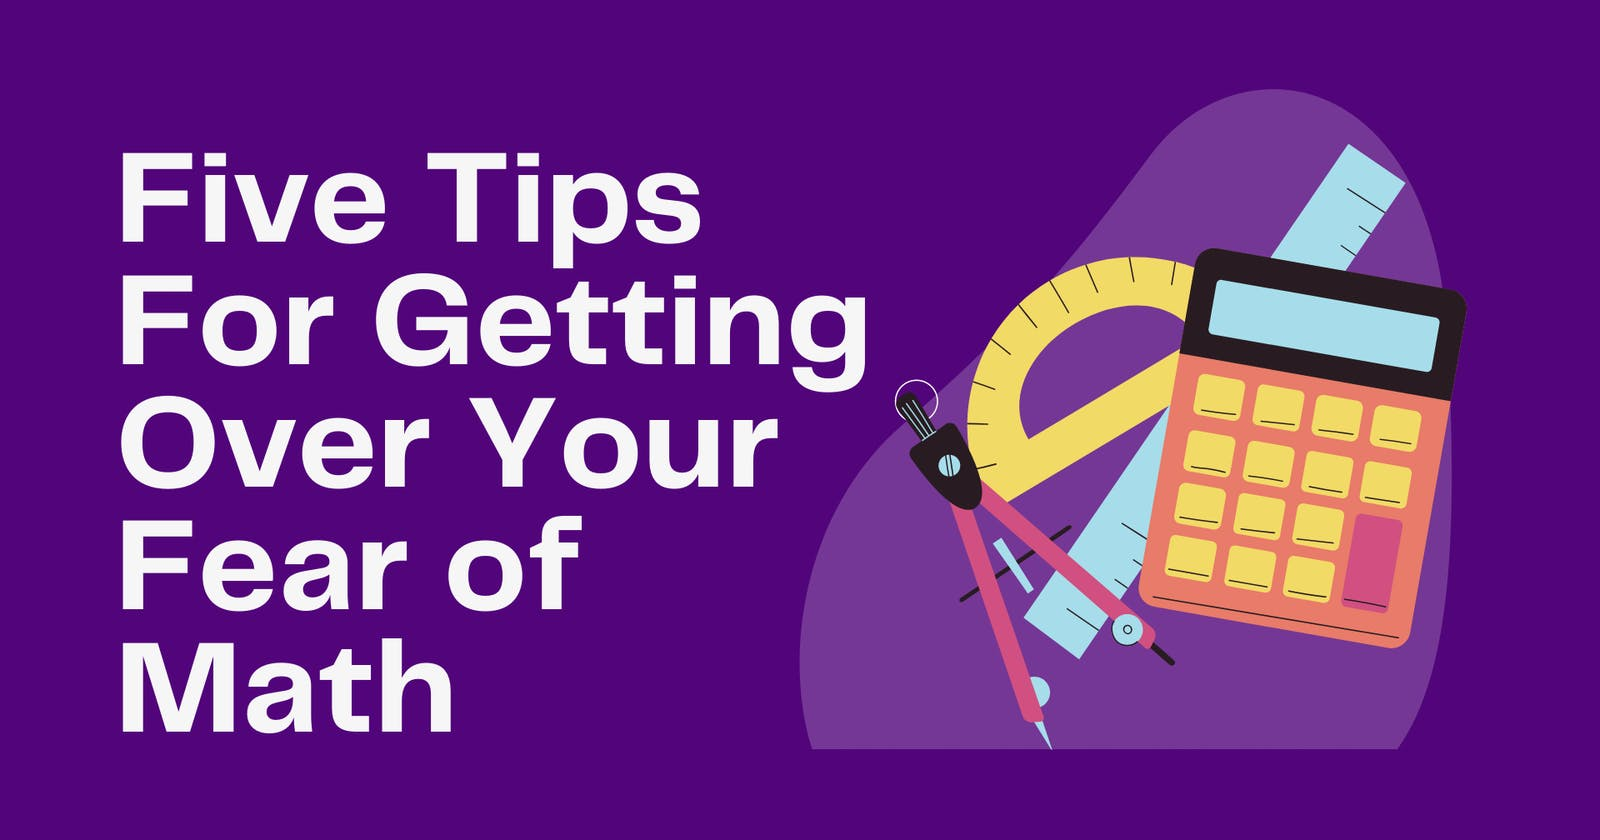 5 Tips for Getting Over Your Fear of Math